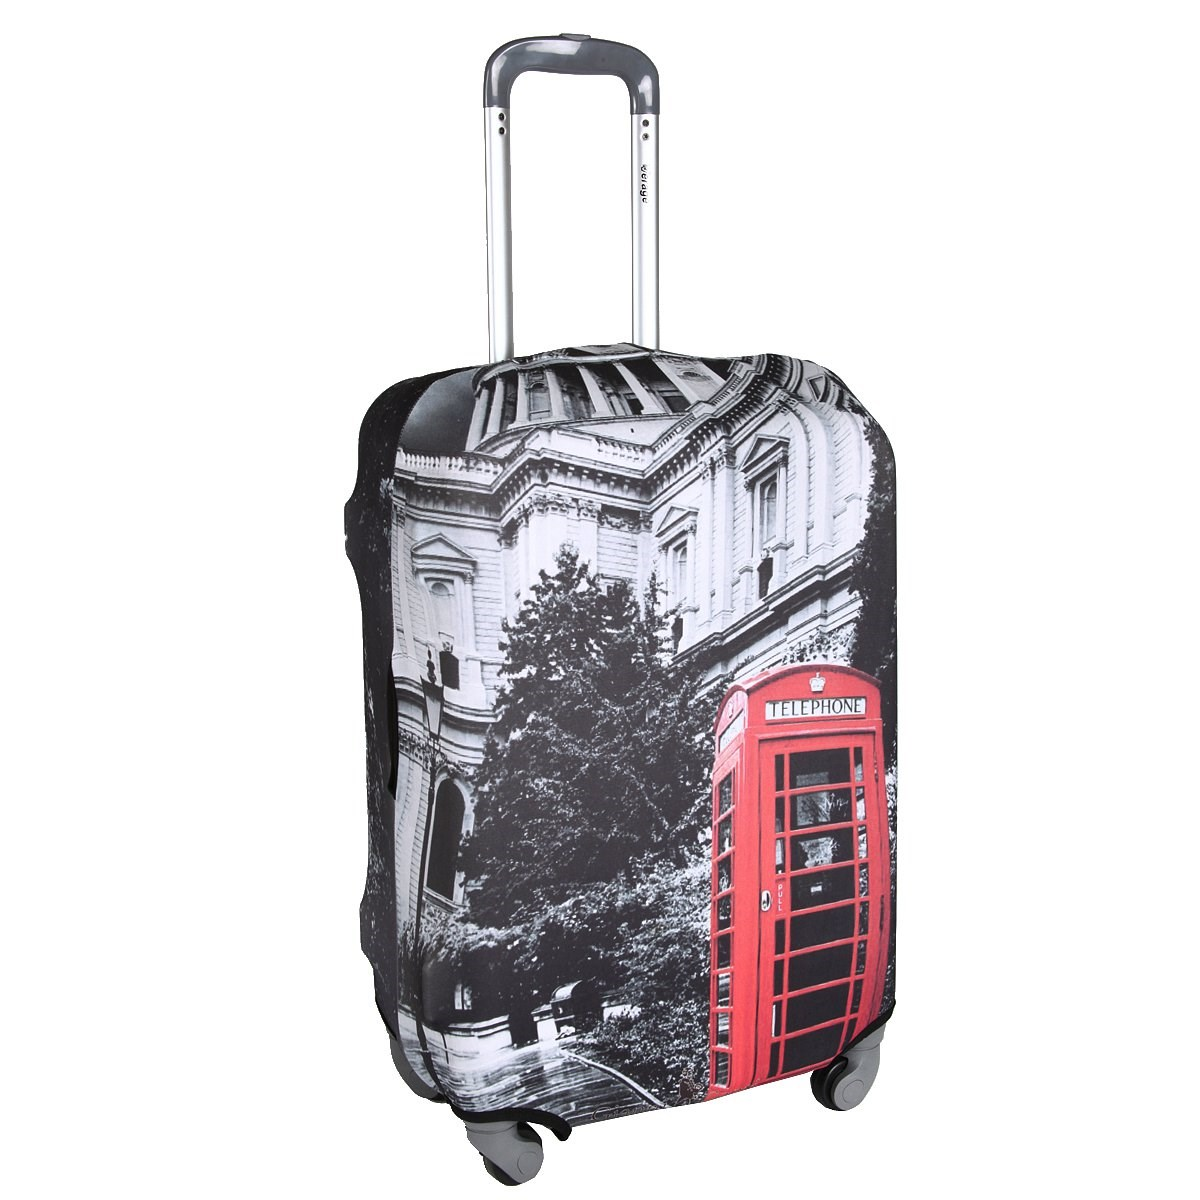 Protective cover for suitcase 9007 M protective neoprene bag case for dslr camera lens black size m